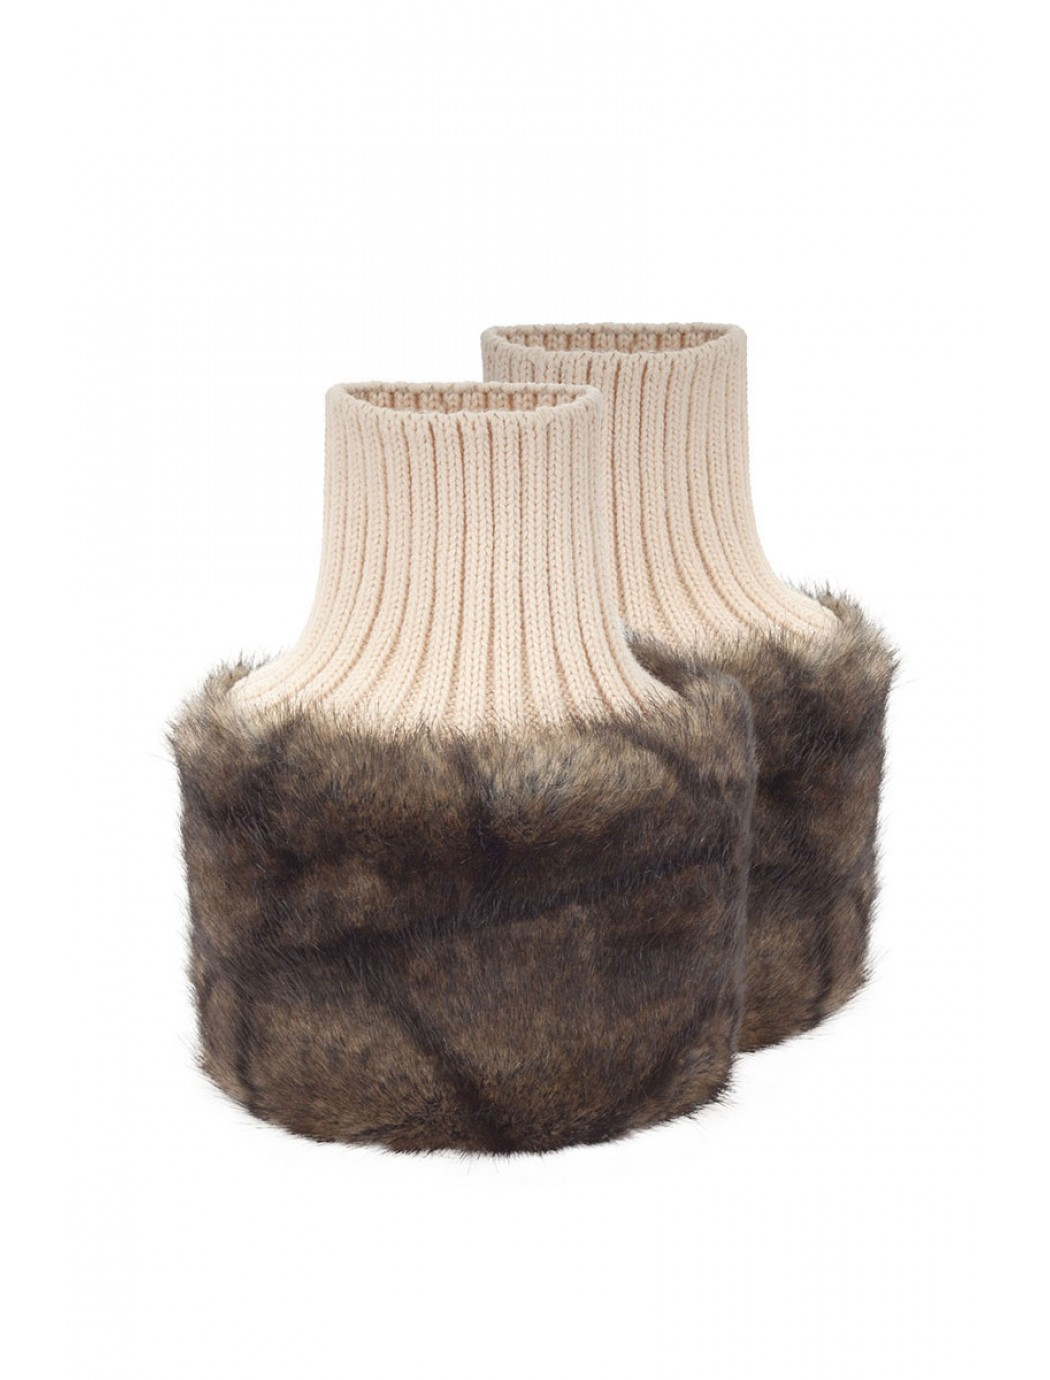 carton-socks-headwear-scaves-elk-pair